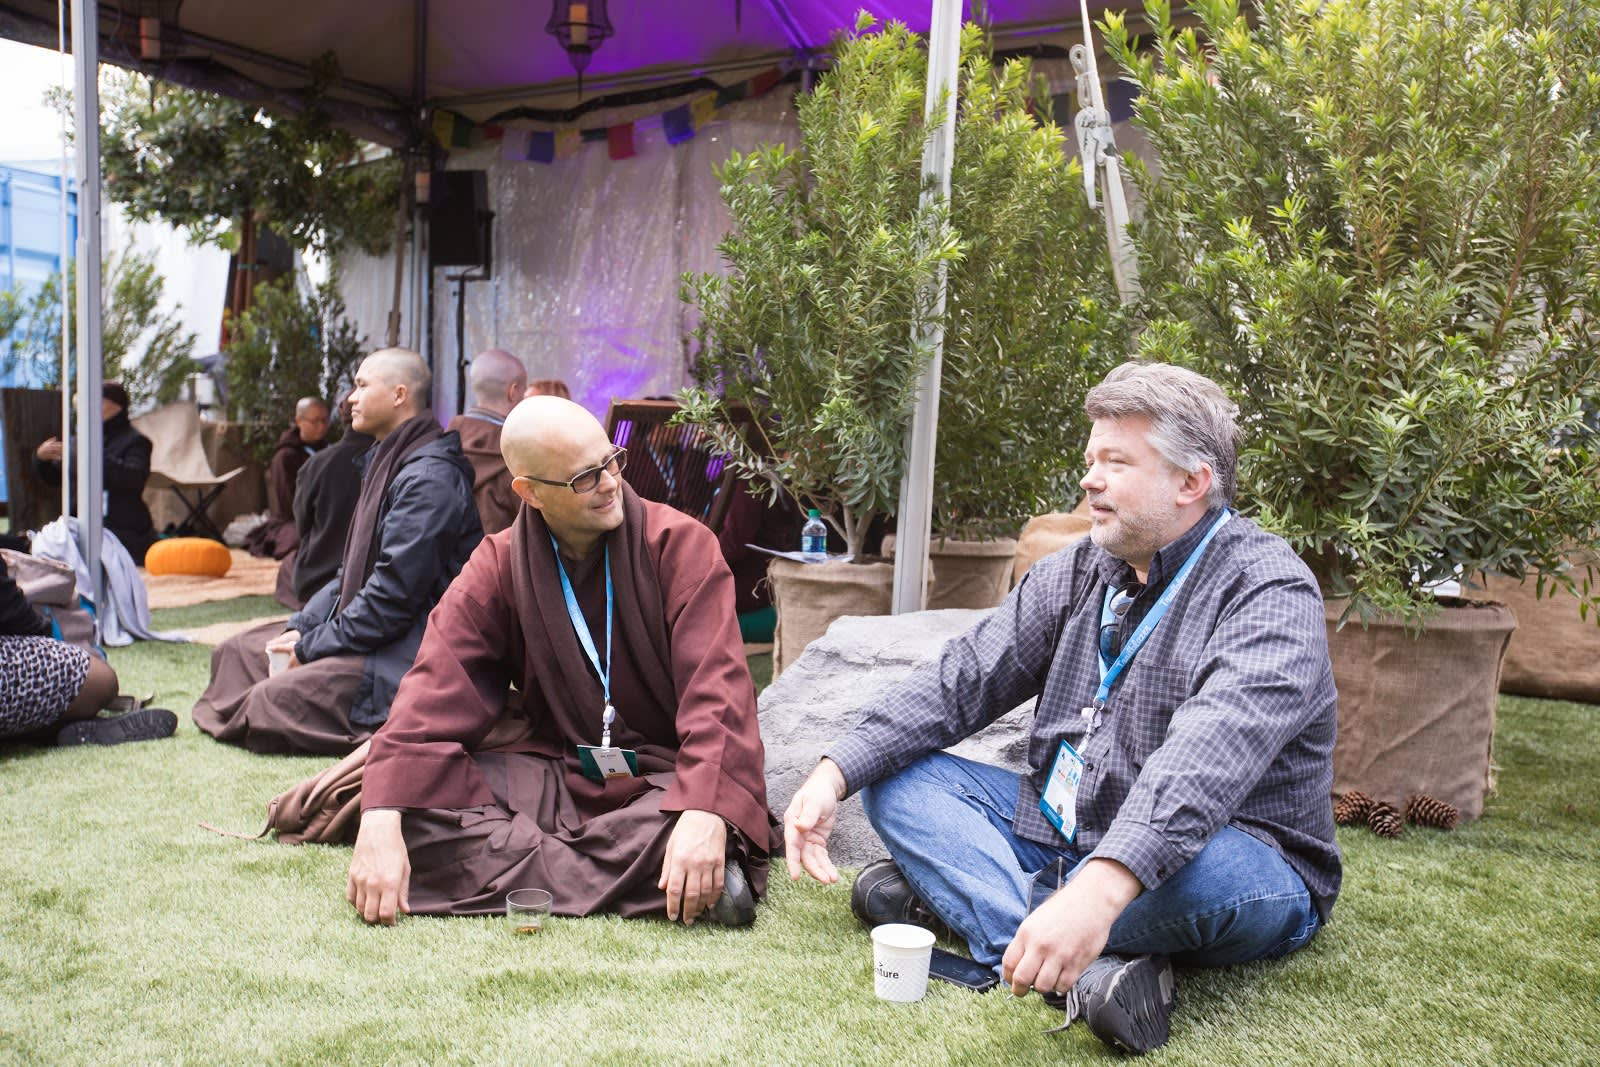 A monk from Plum Valley helps an attendee through a meditation.